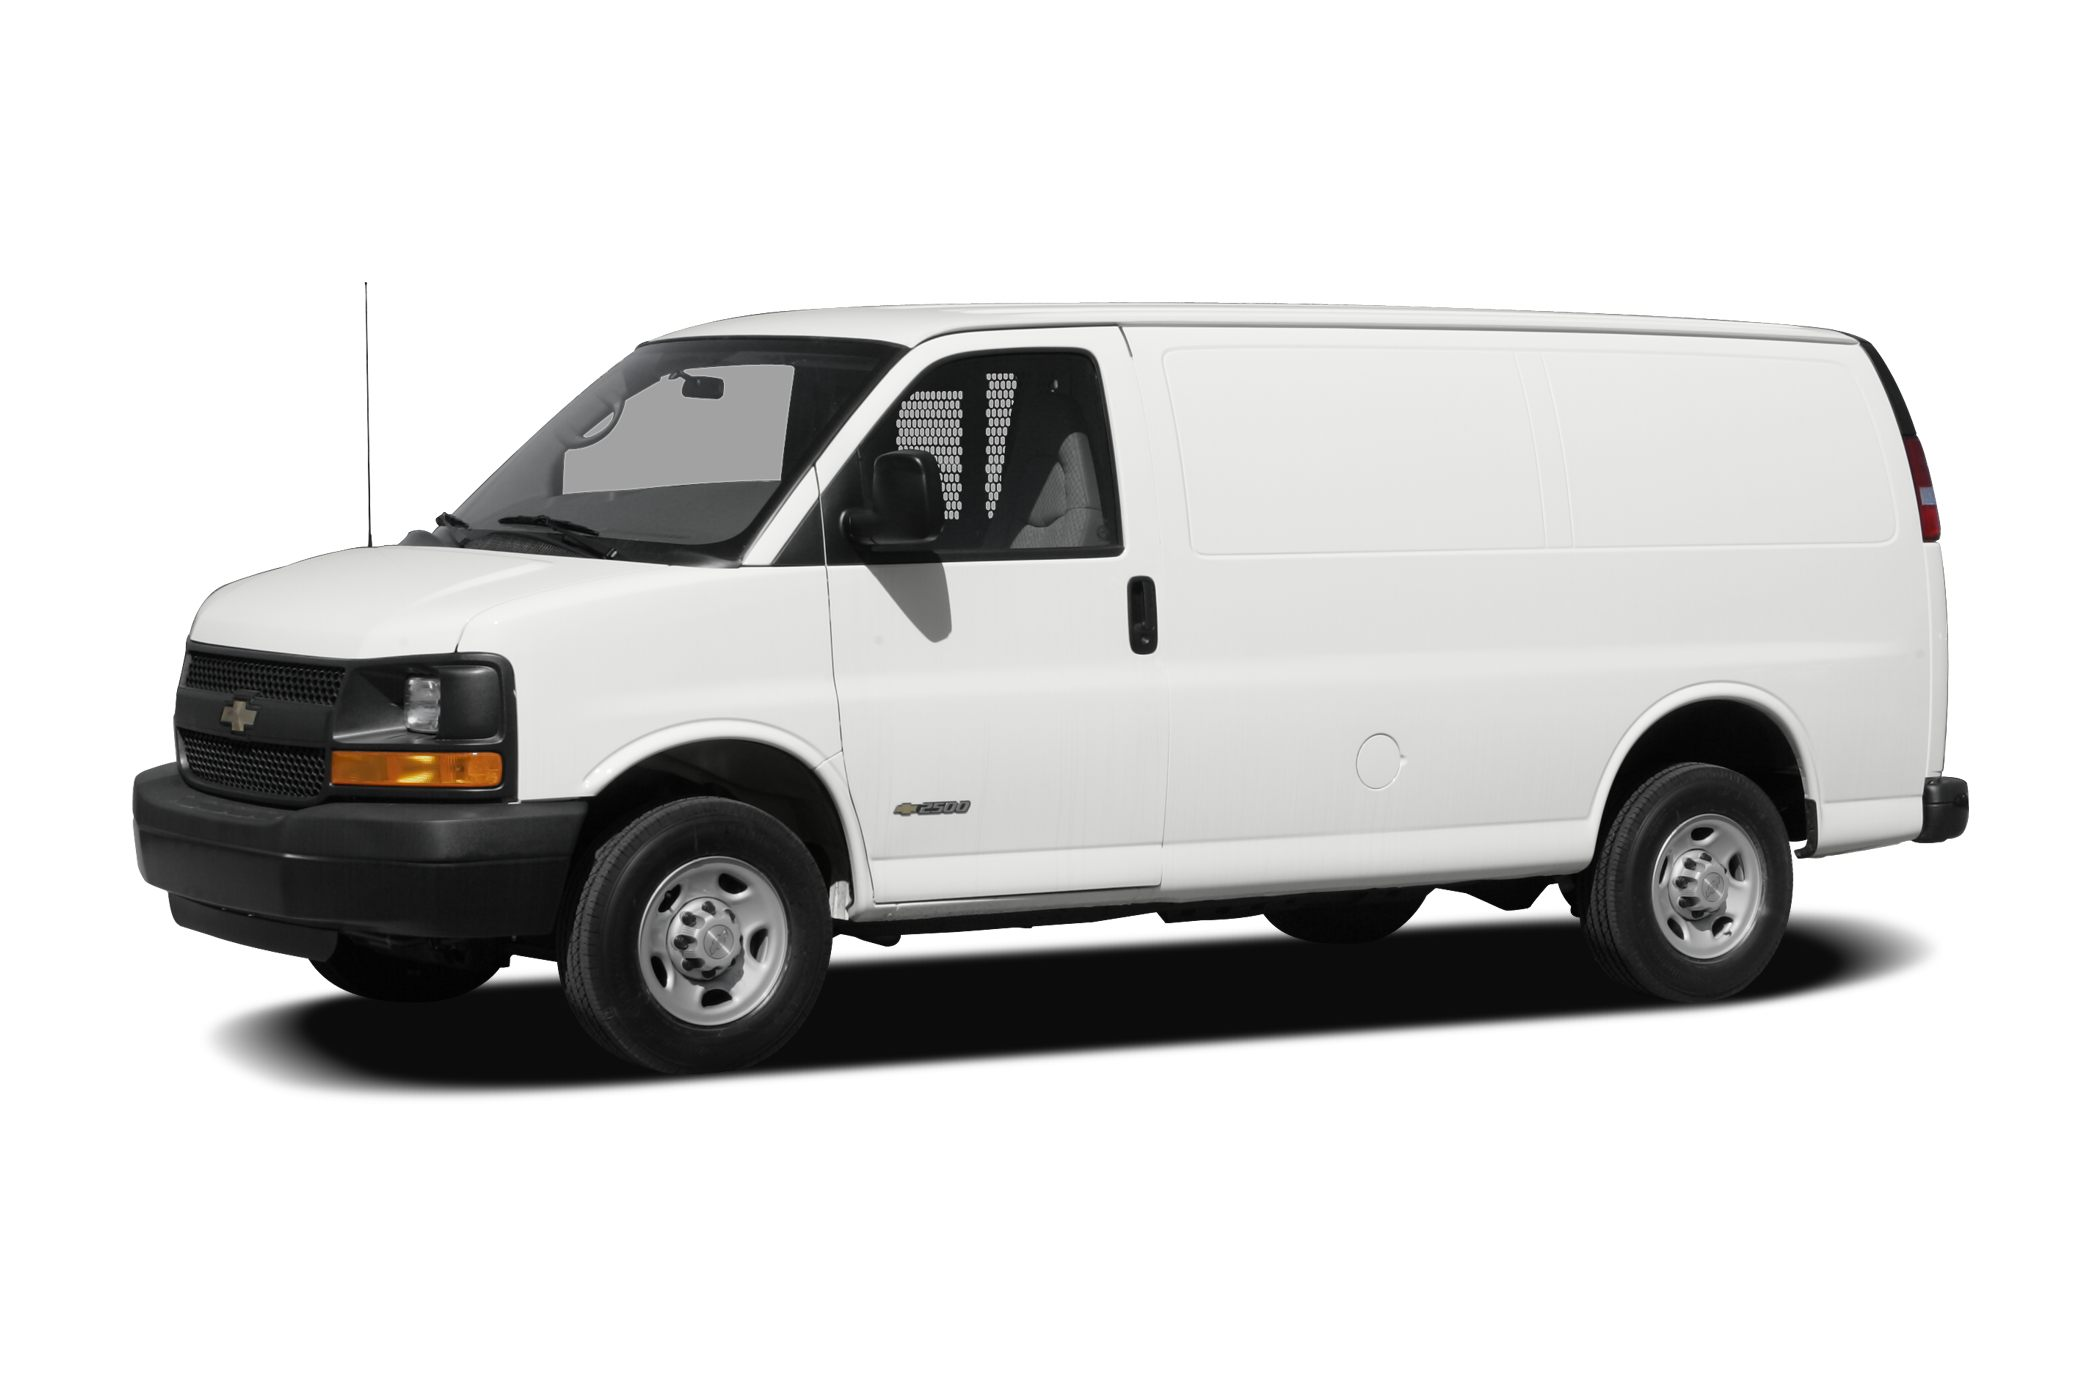 2010 Chevrolet Express 1500 Cargo Van for sale in Doylestown for $36,985 with 28,865 miles